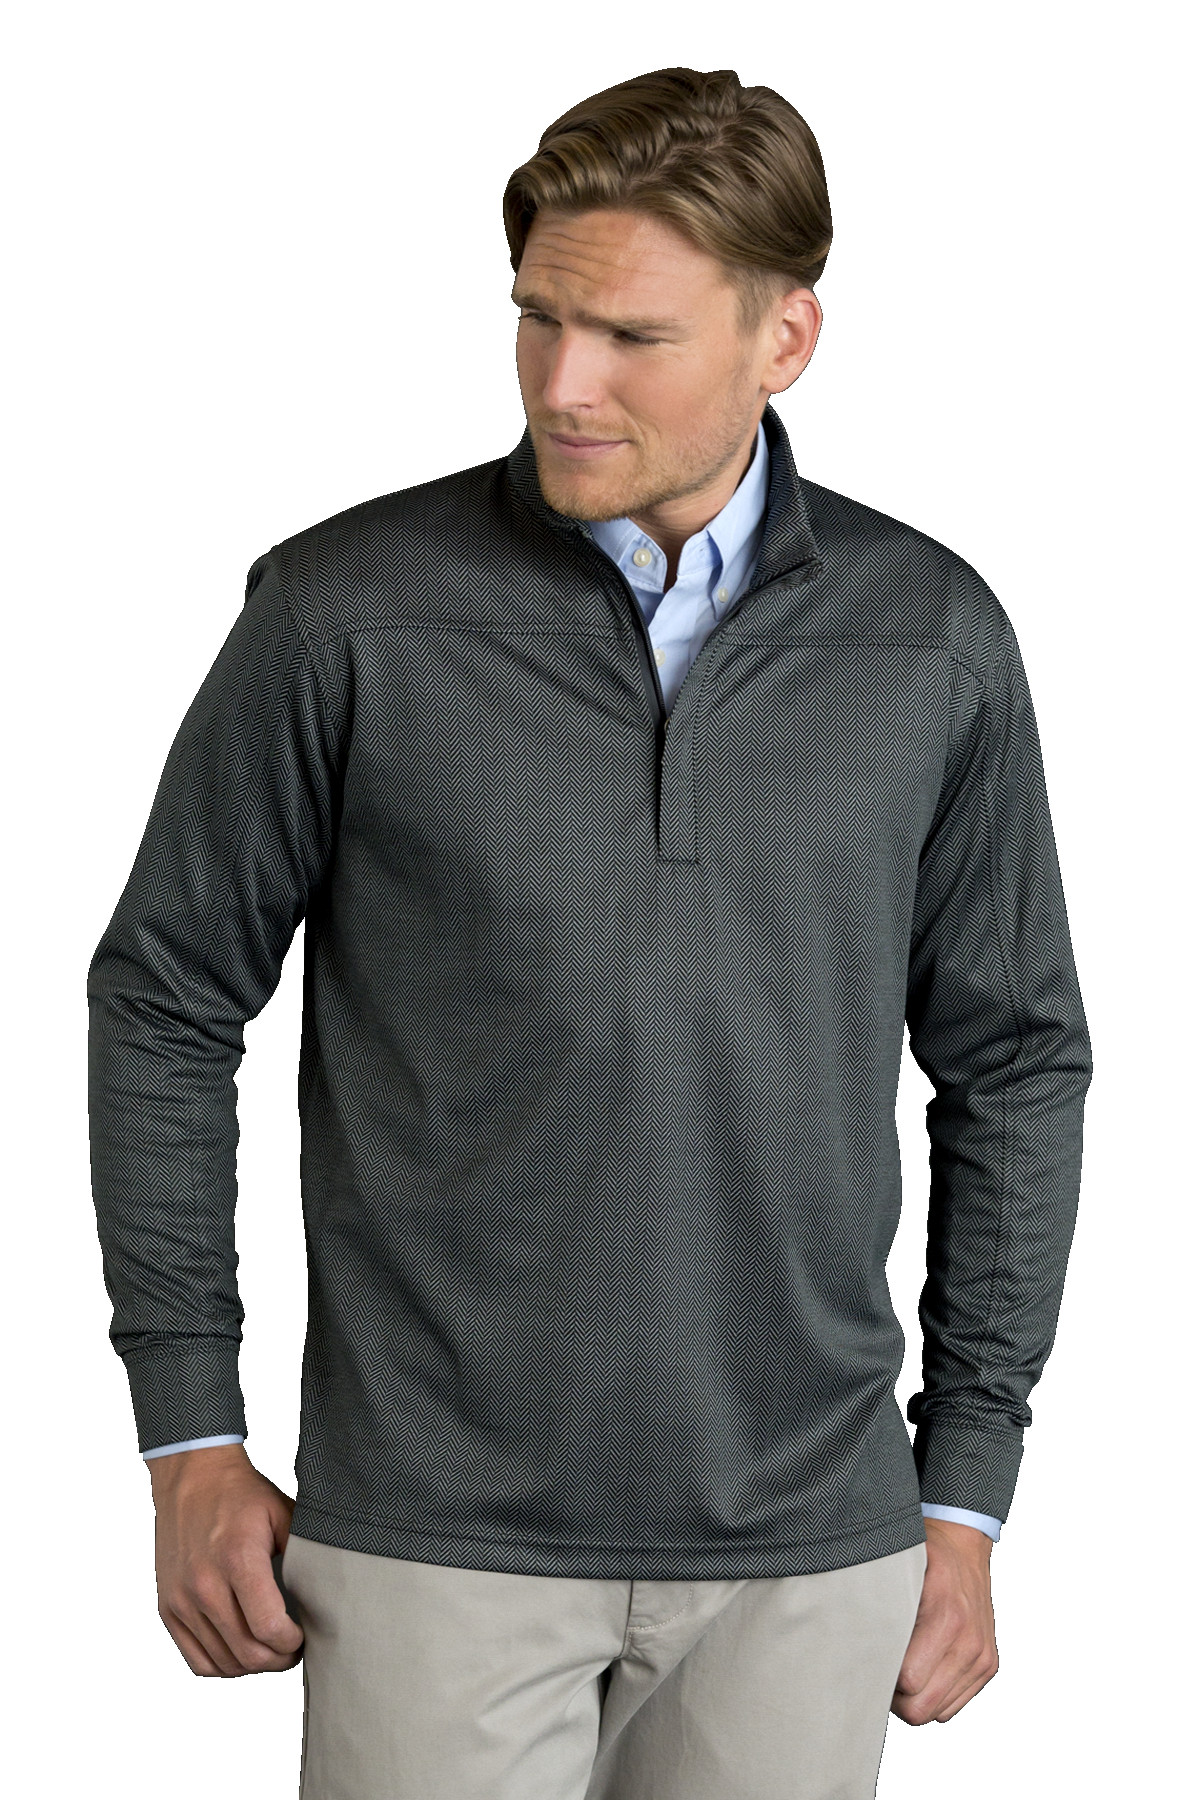 Vansport 3420 - Men's Pro Herringbone 1/4 Zip Pullover